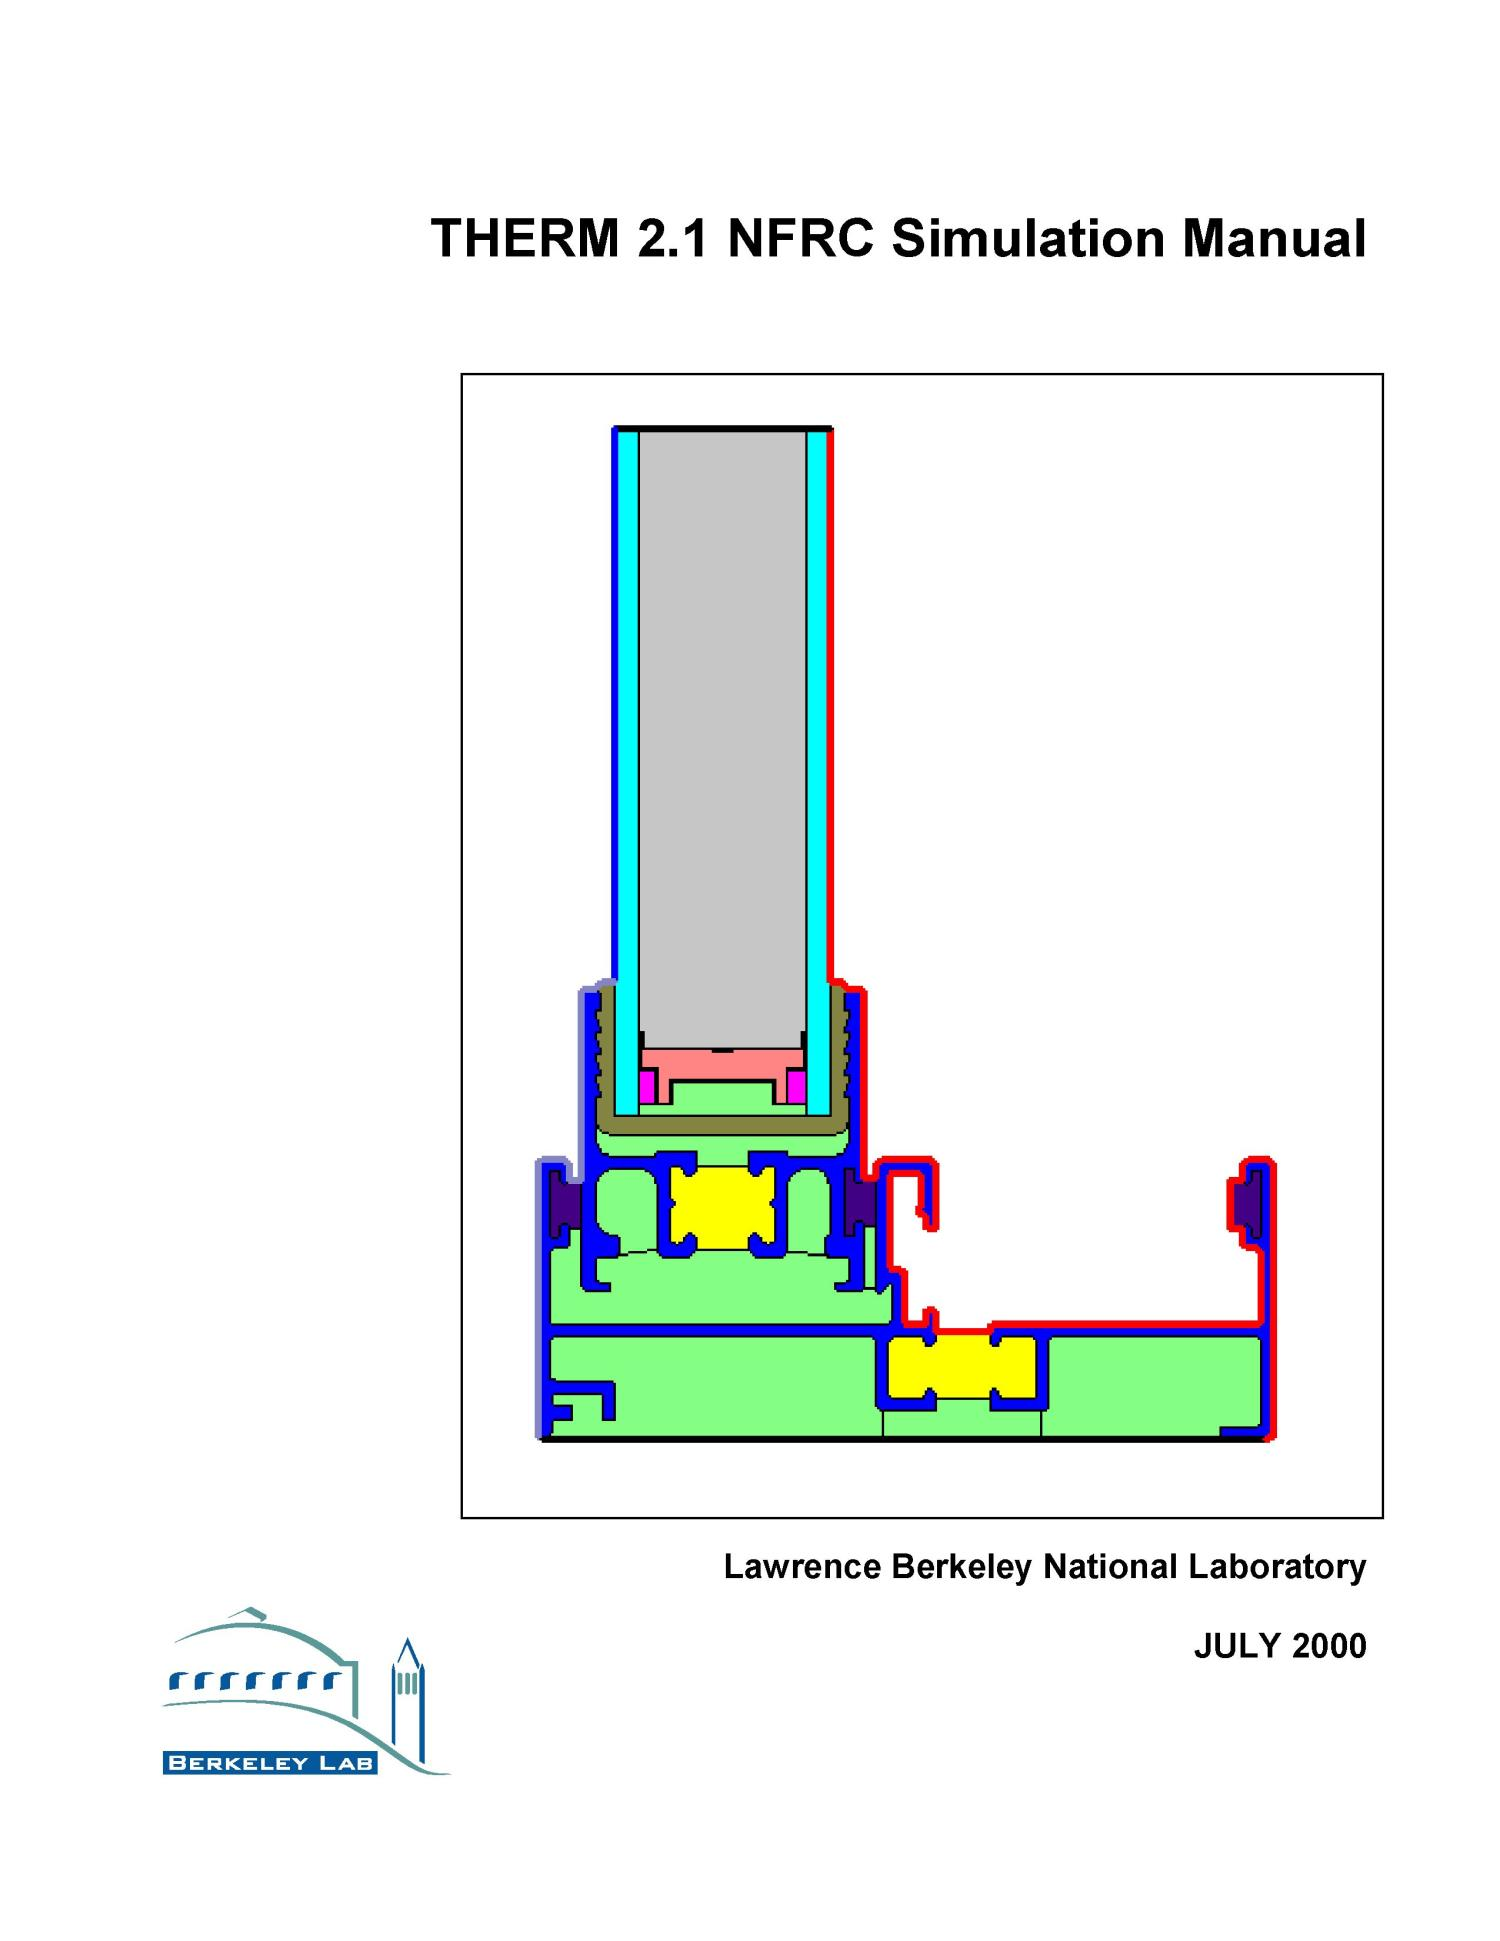 THERM 2.1 NFRC simulation manual                                                                                                      [Sequence #]: 1 of 260